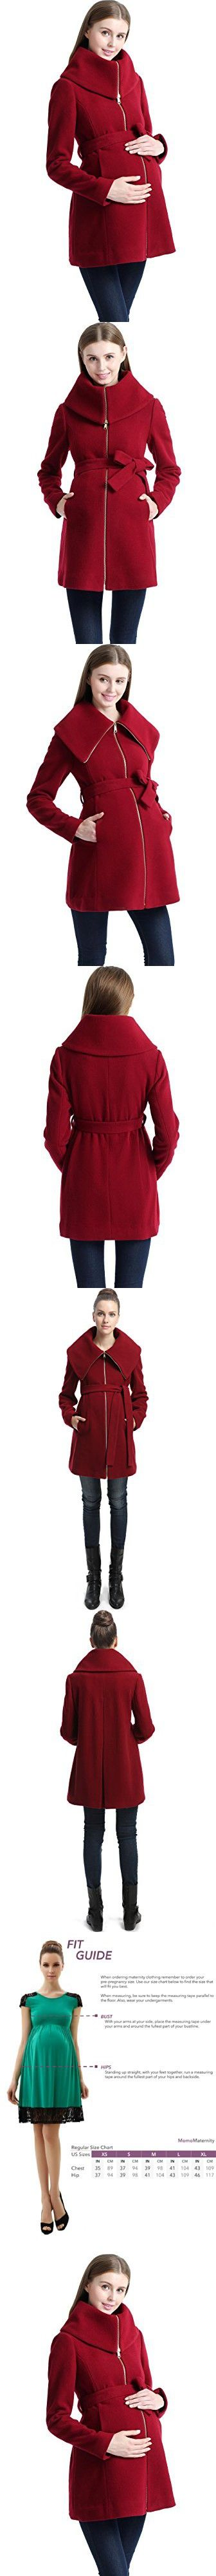 Momo Maternity Women's Wool Blend Fold Collar Zip Up Coat- Wine S